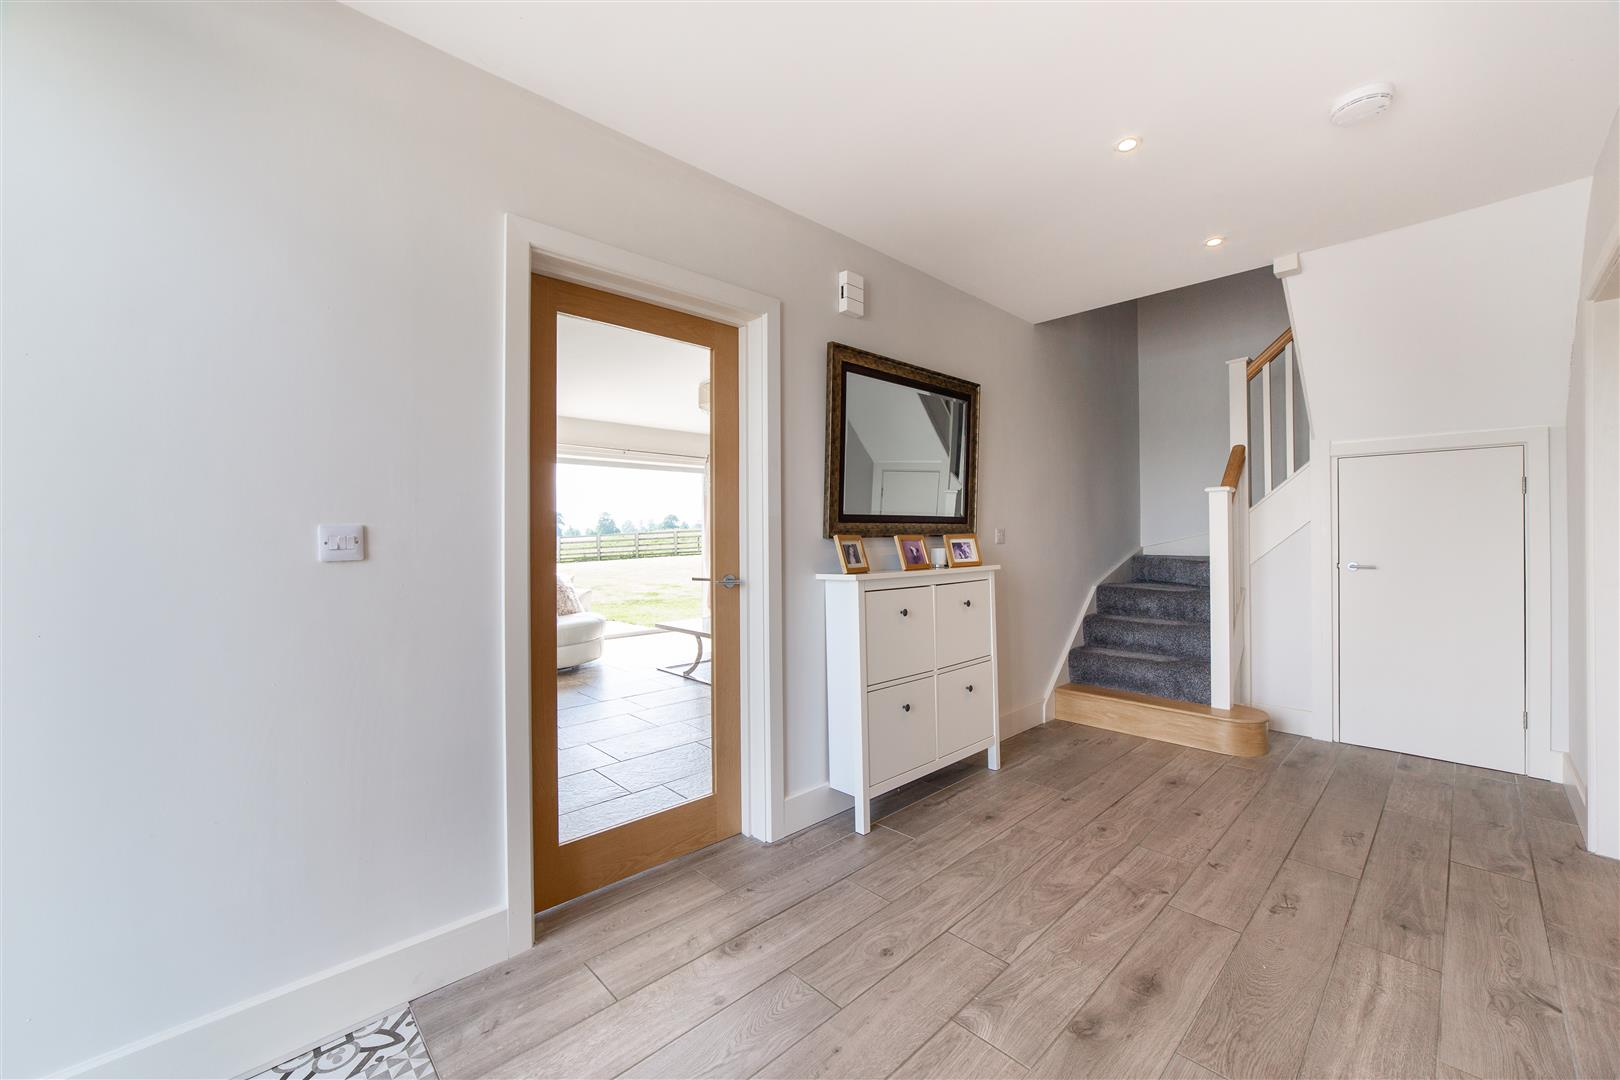 4 bed detached house for sale, Hexham  - Property Image 26